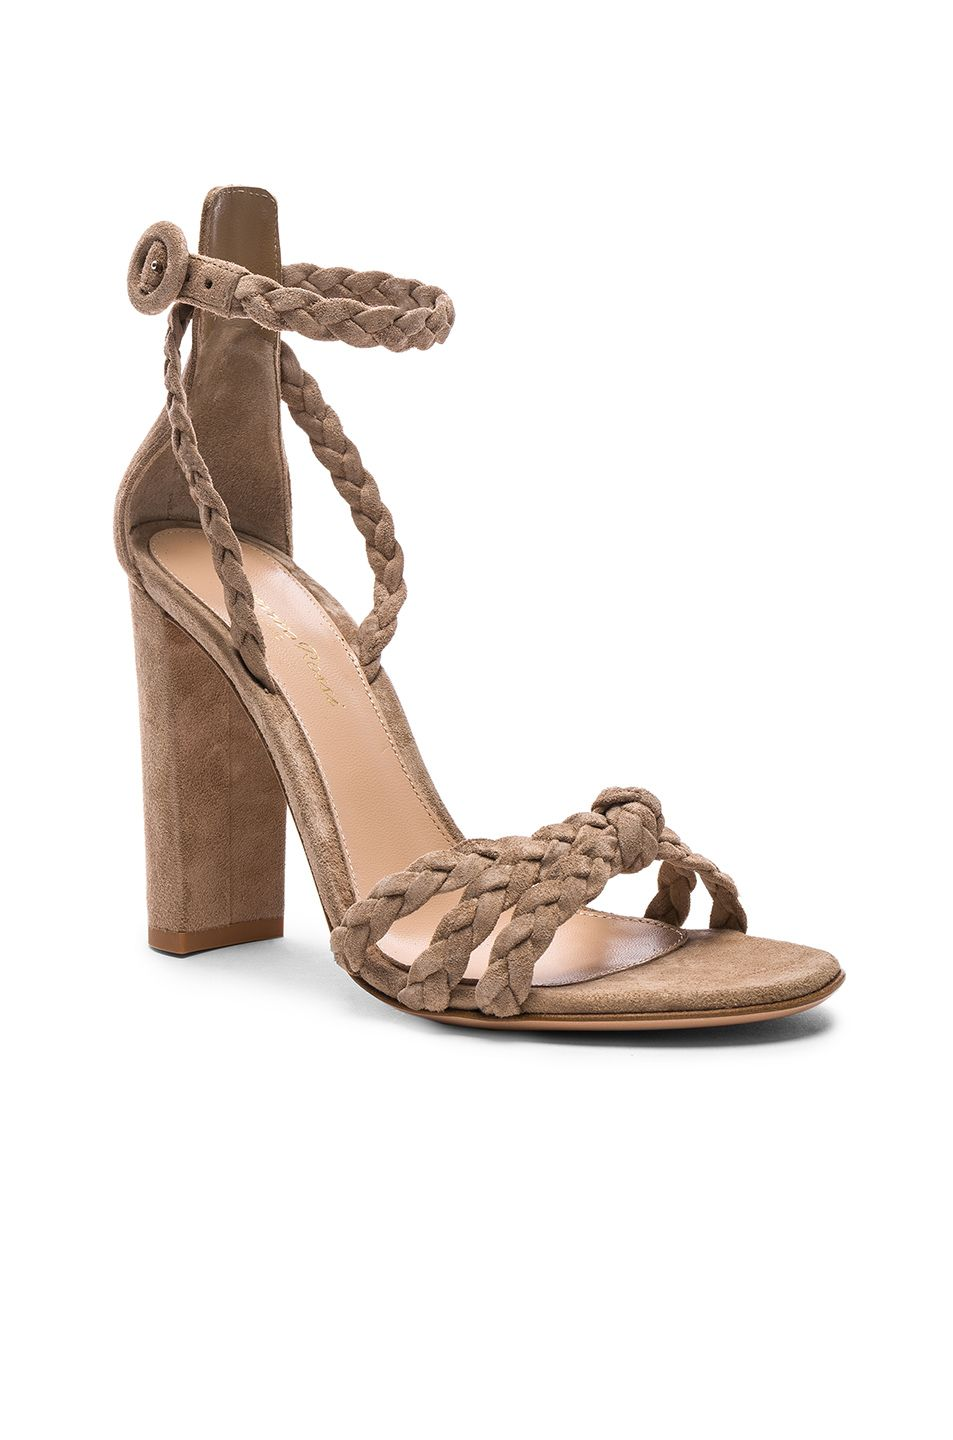 Gianvito Rossi For FWRD Suede Liya Braided Strap Heels in Neutrals.